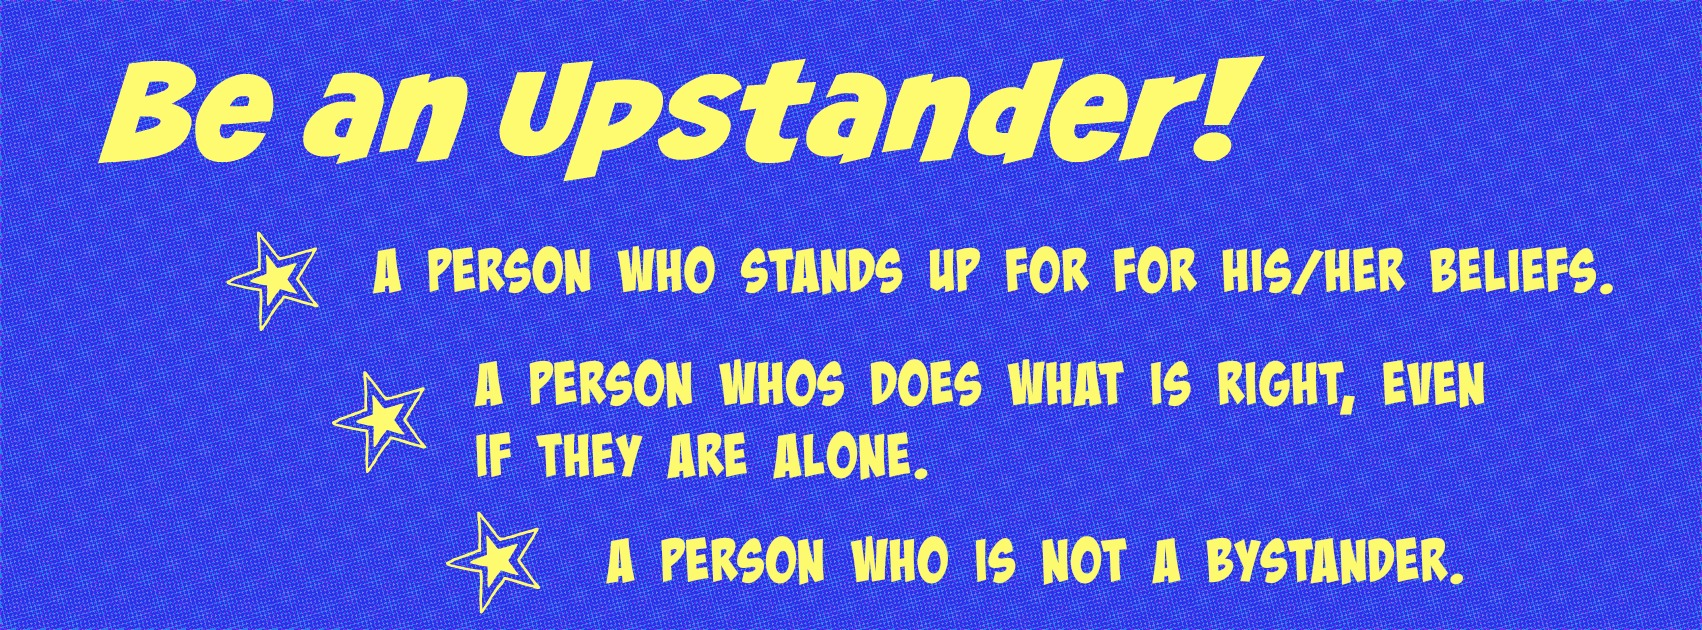 be-an-upstander